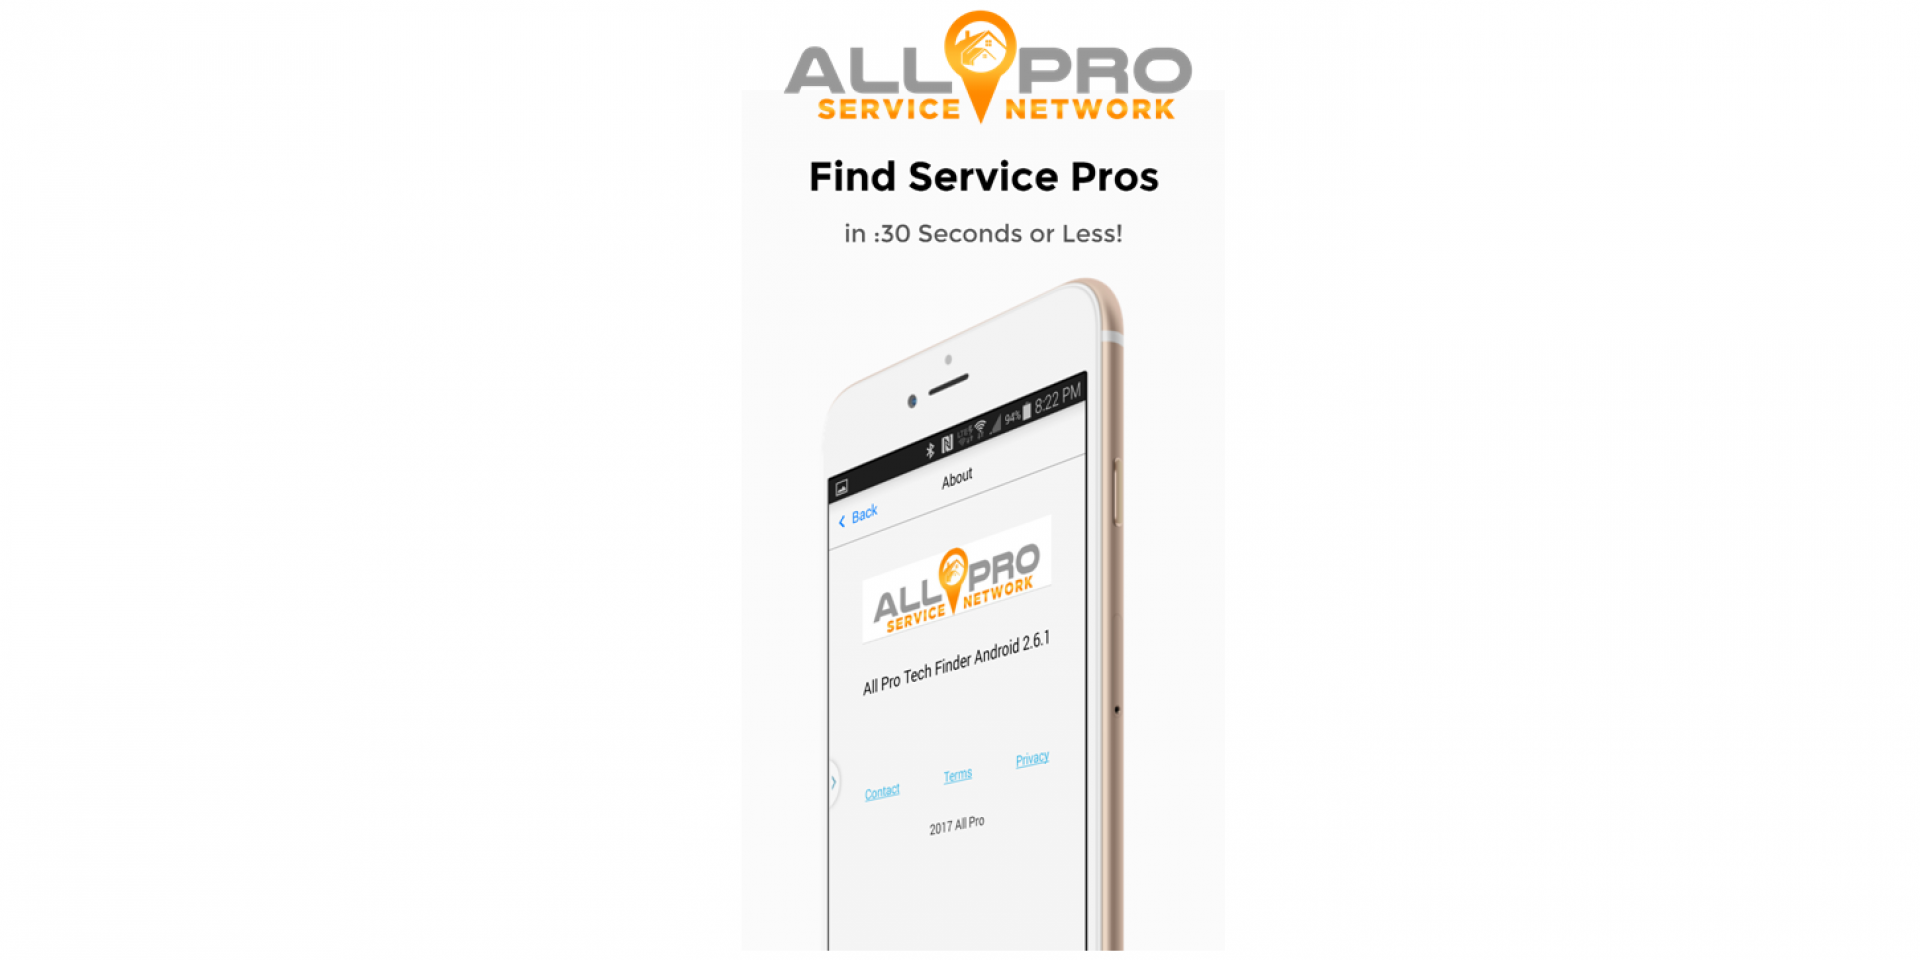 The #1 On-Demand App for Facility Managers by All Pro